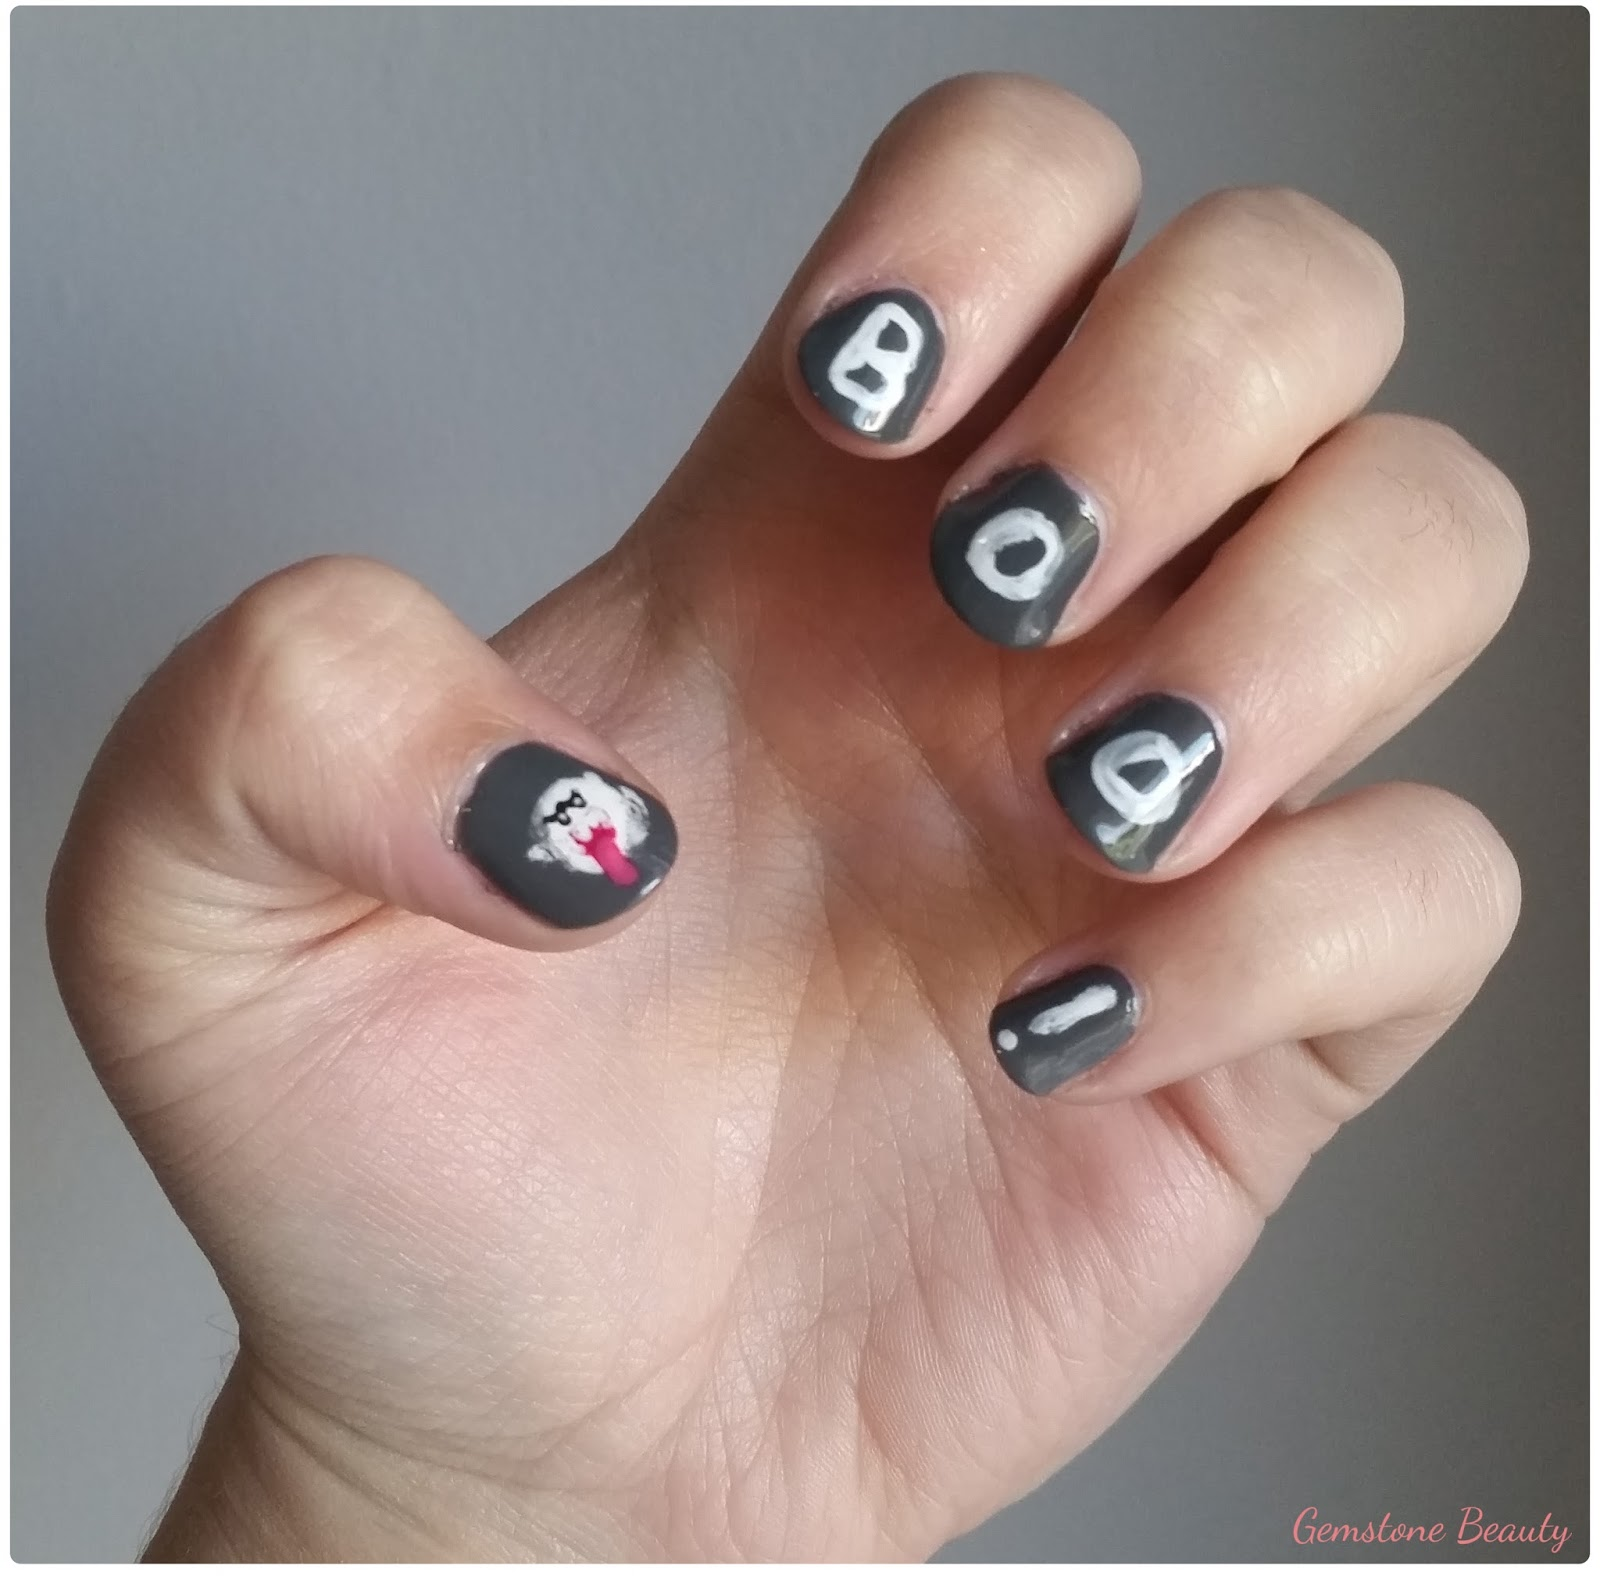 October Nail Art: Gemstone Beauty: October Nail Art Challenge Day 2: Ghosts